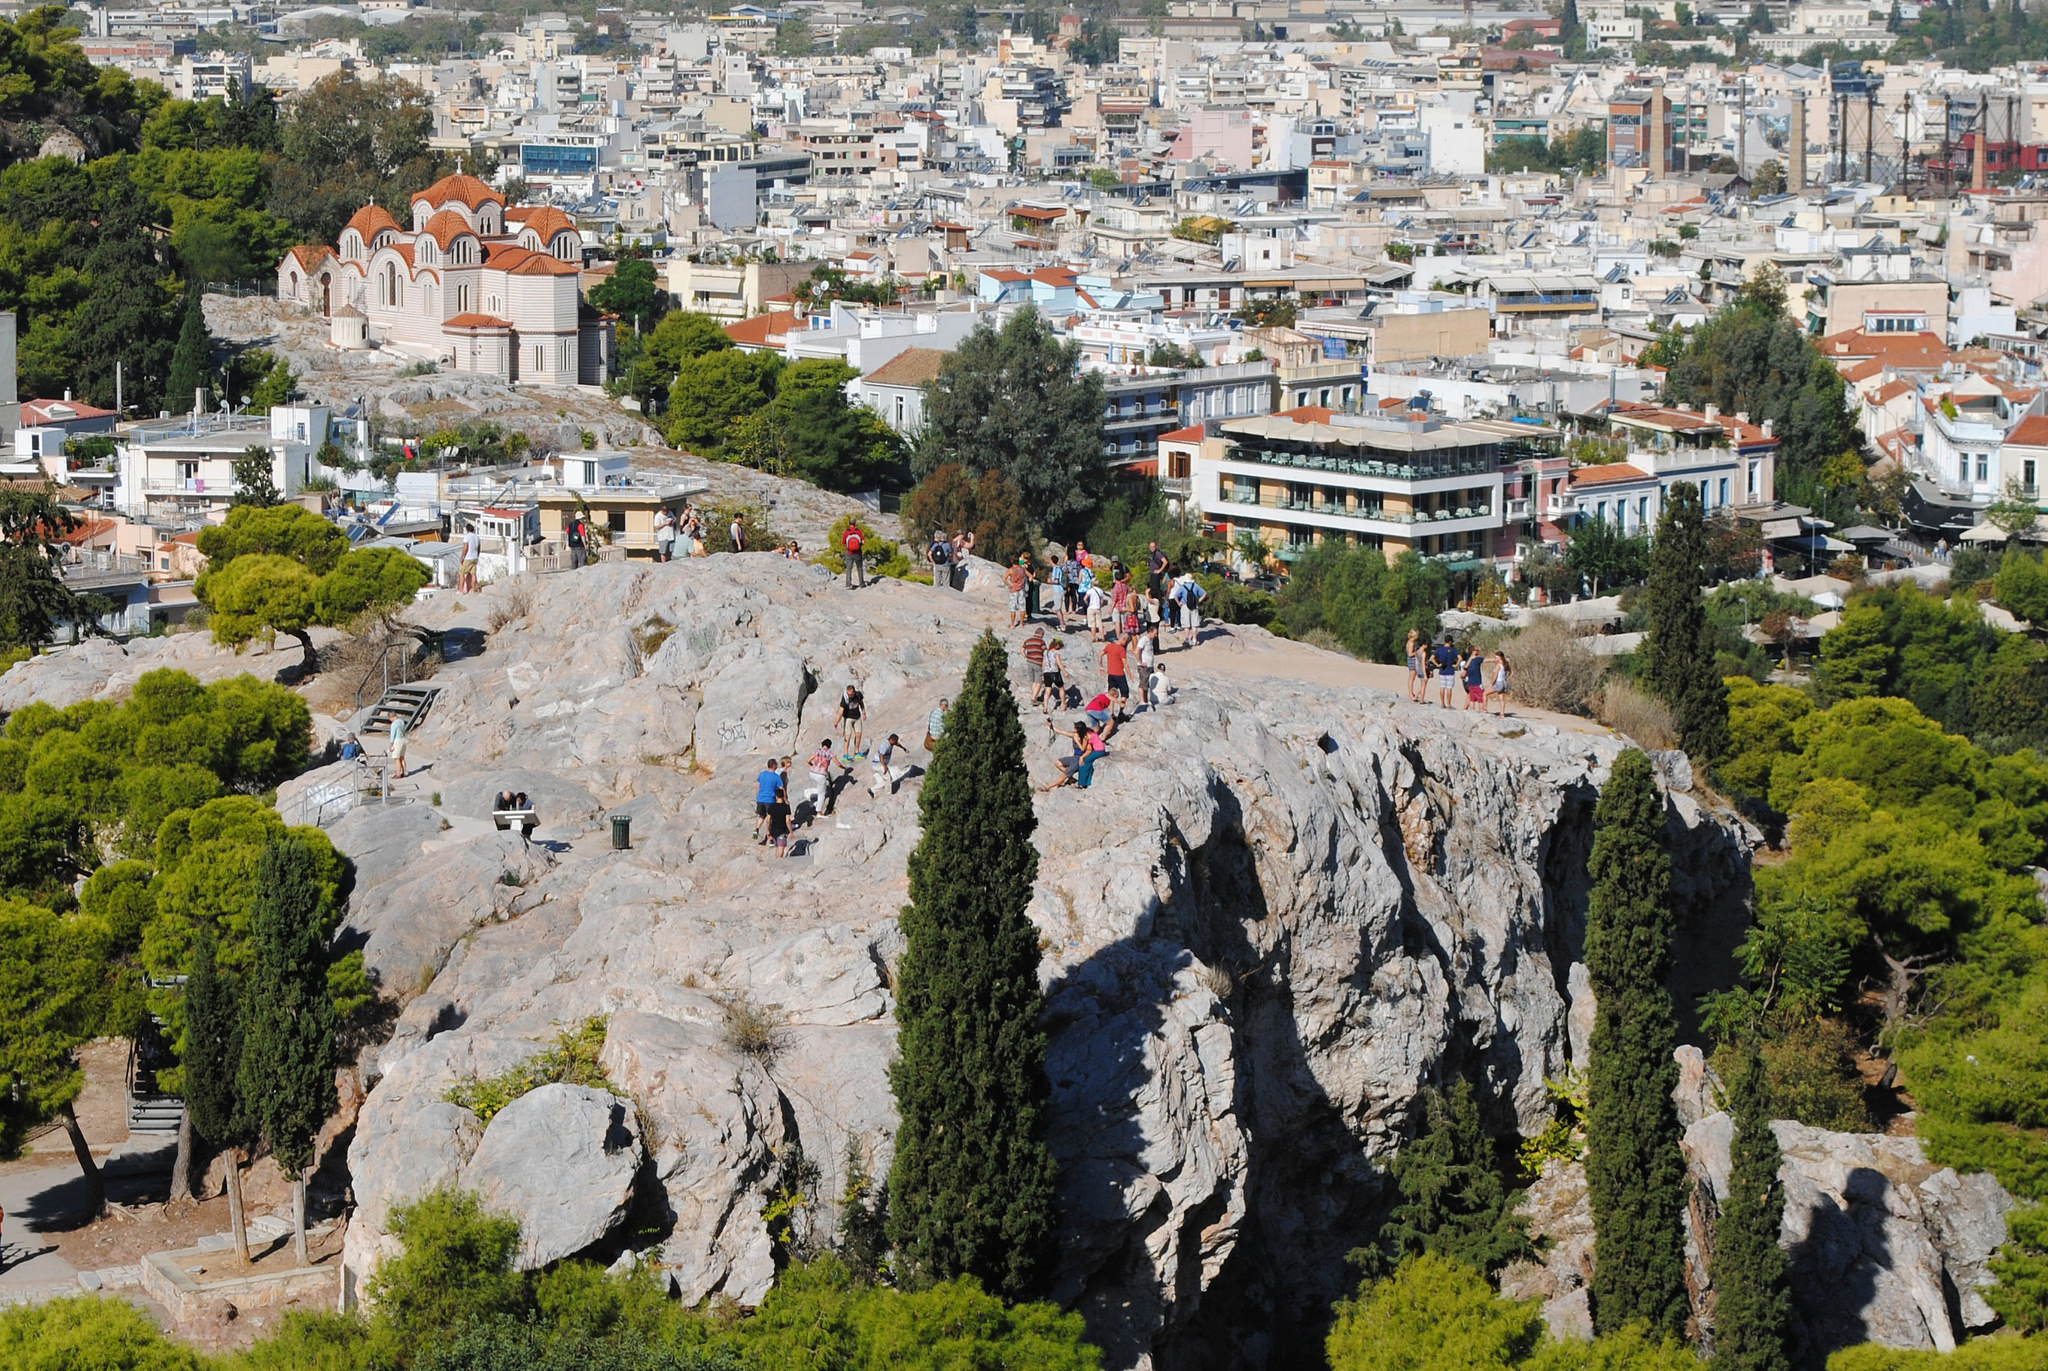 Areopagus - Rock Formation in Acropolis - Thousand Wonders